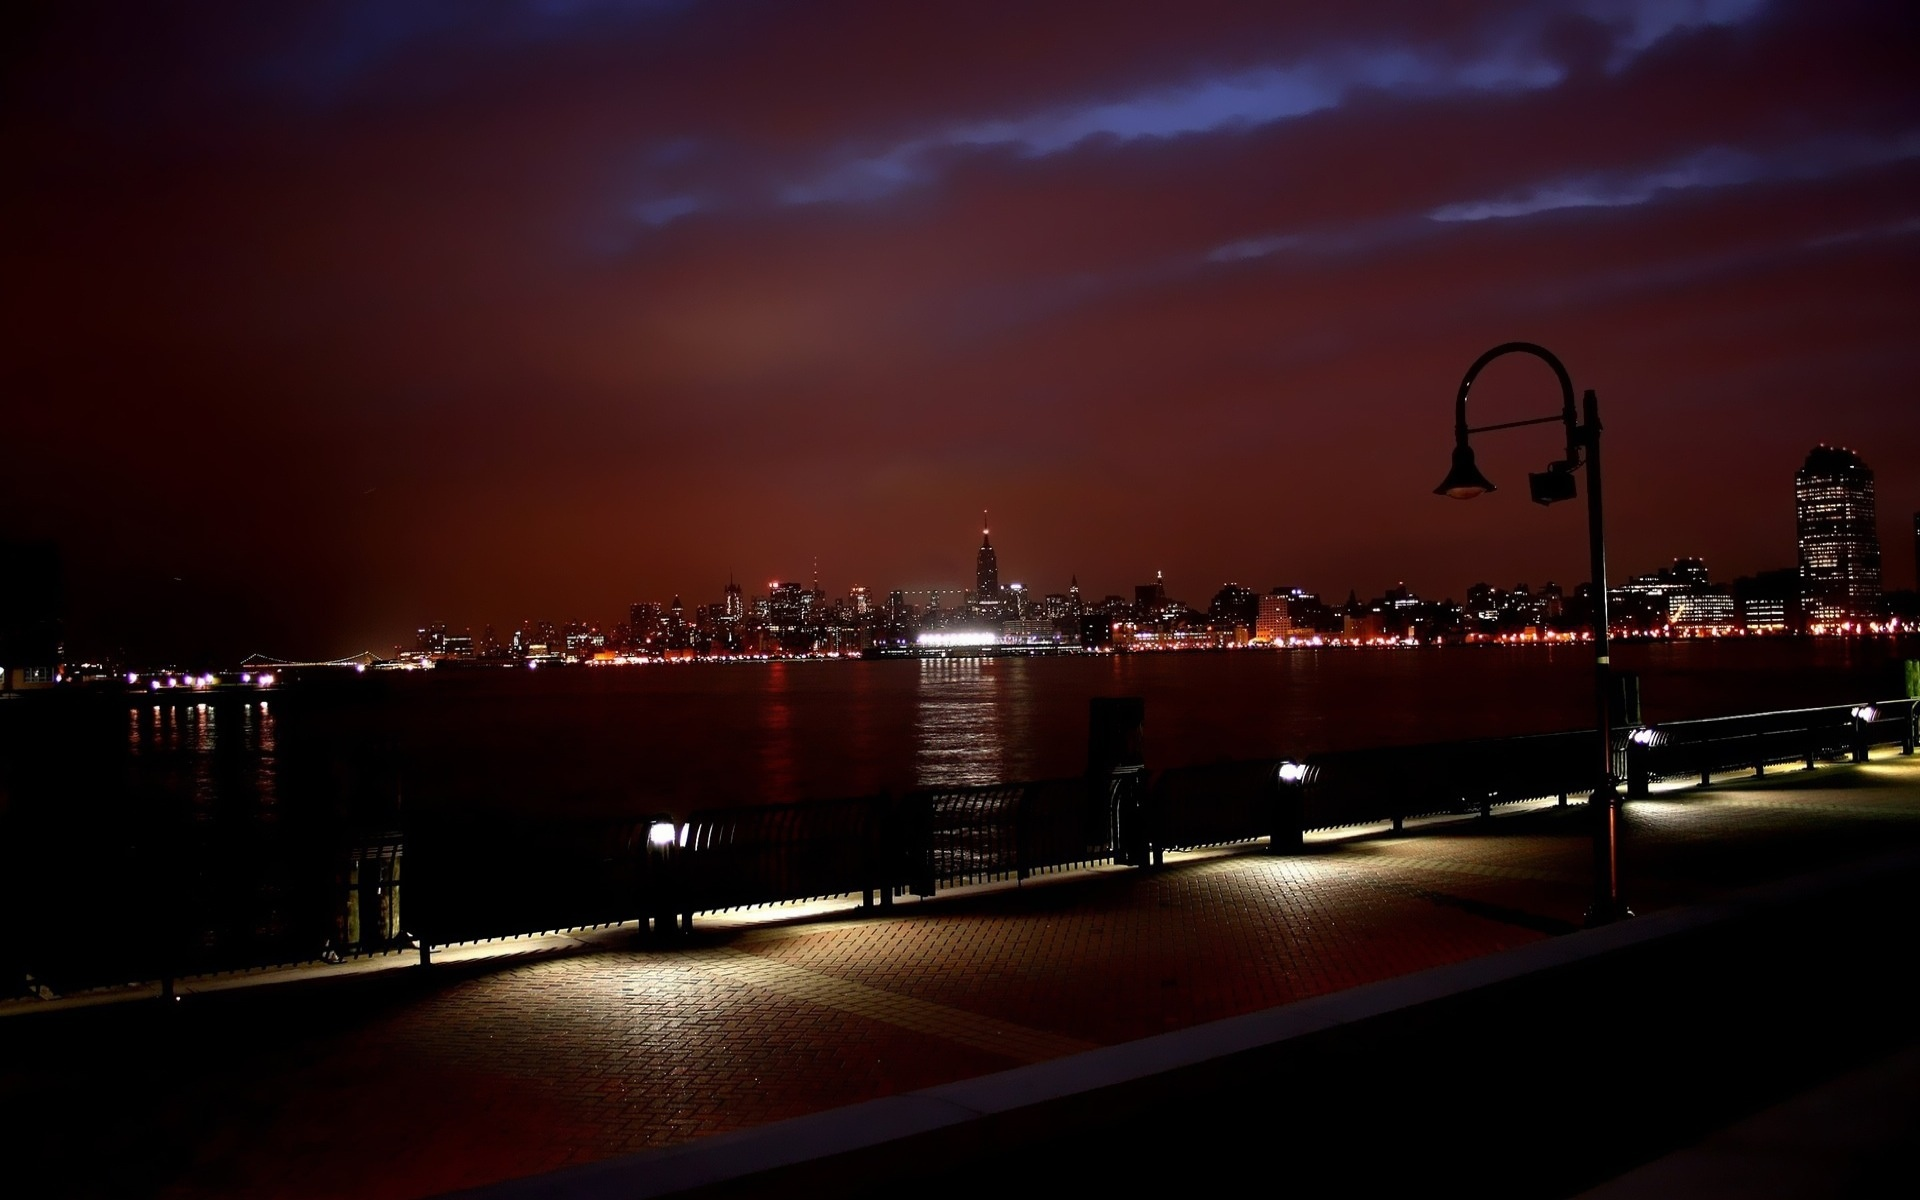 New York Skyline At Night Wallpapers In Jpg Format For Free Download